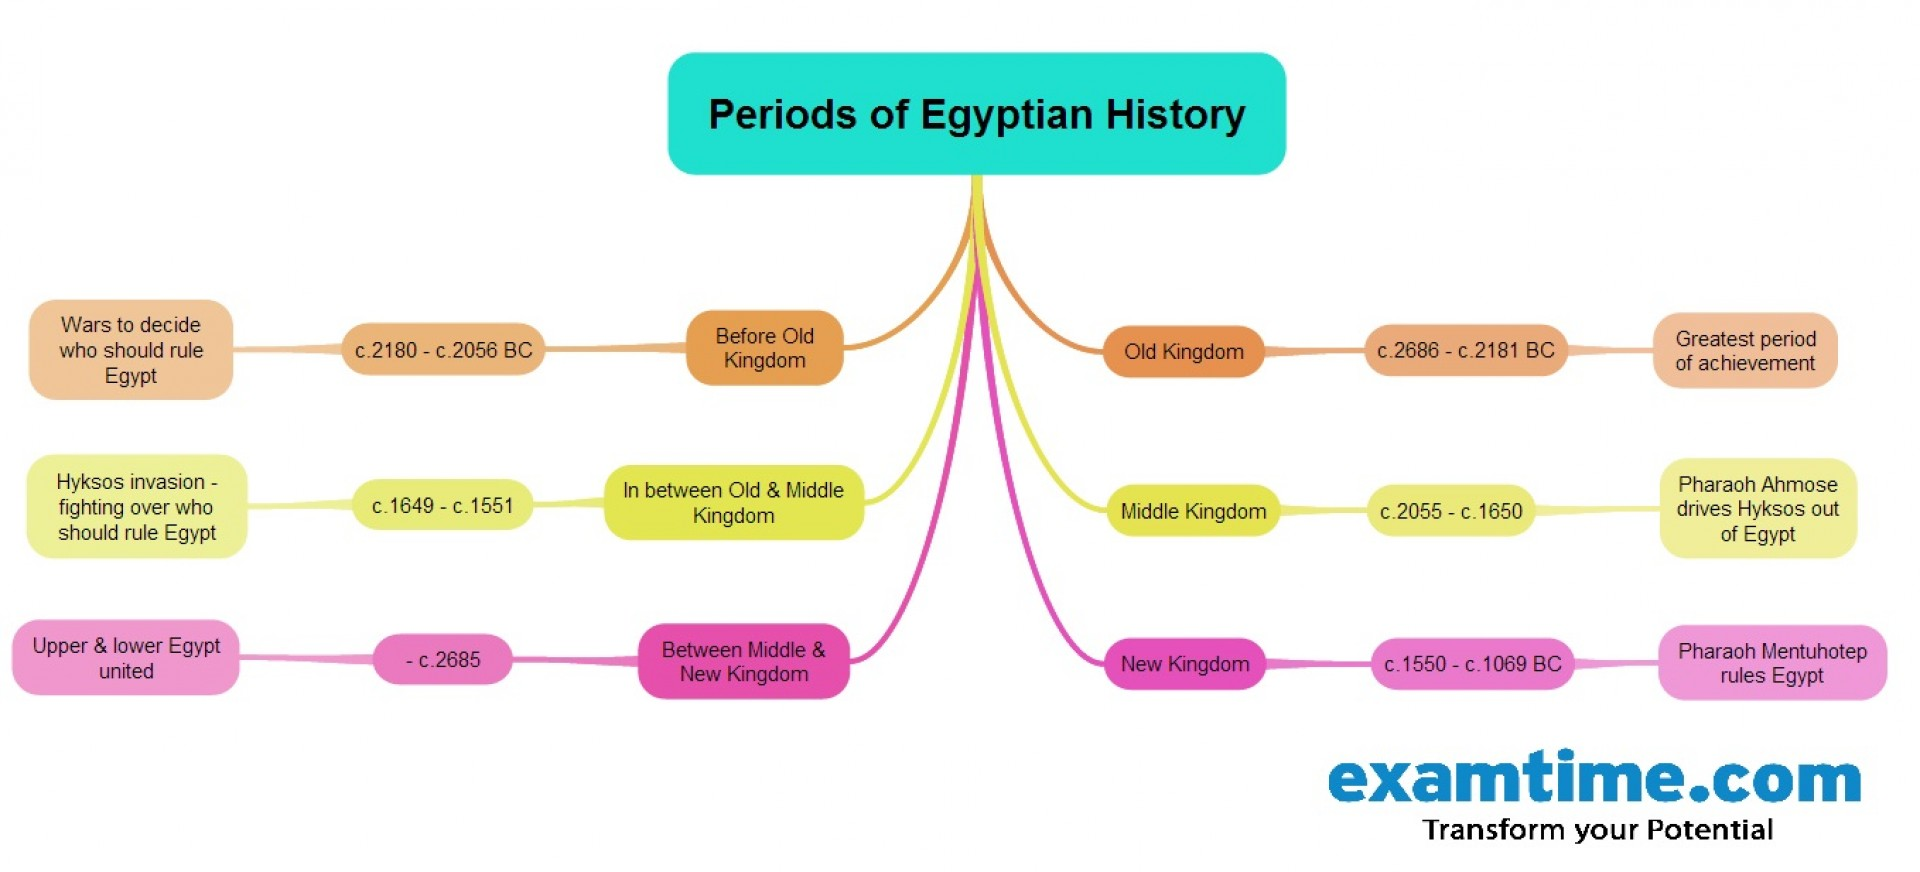 016 Essay Example Egypt Mm How To Memorise An In Unbelievable Hour A Few Hours Remember 1 1920